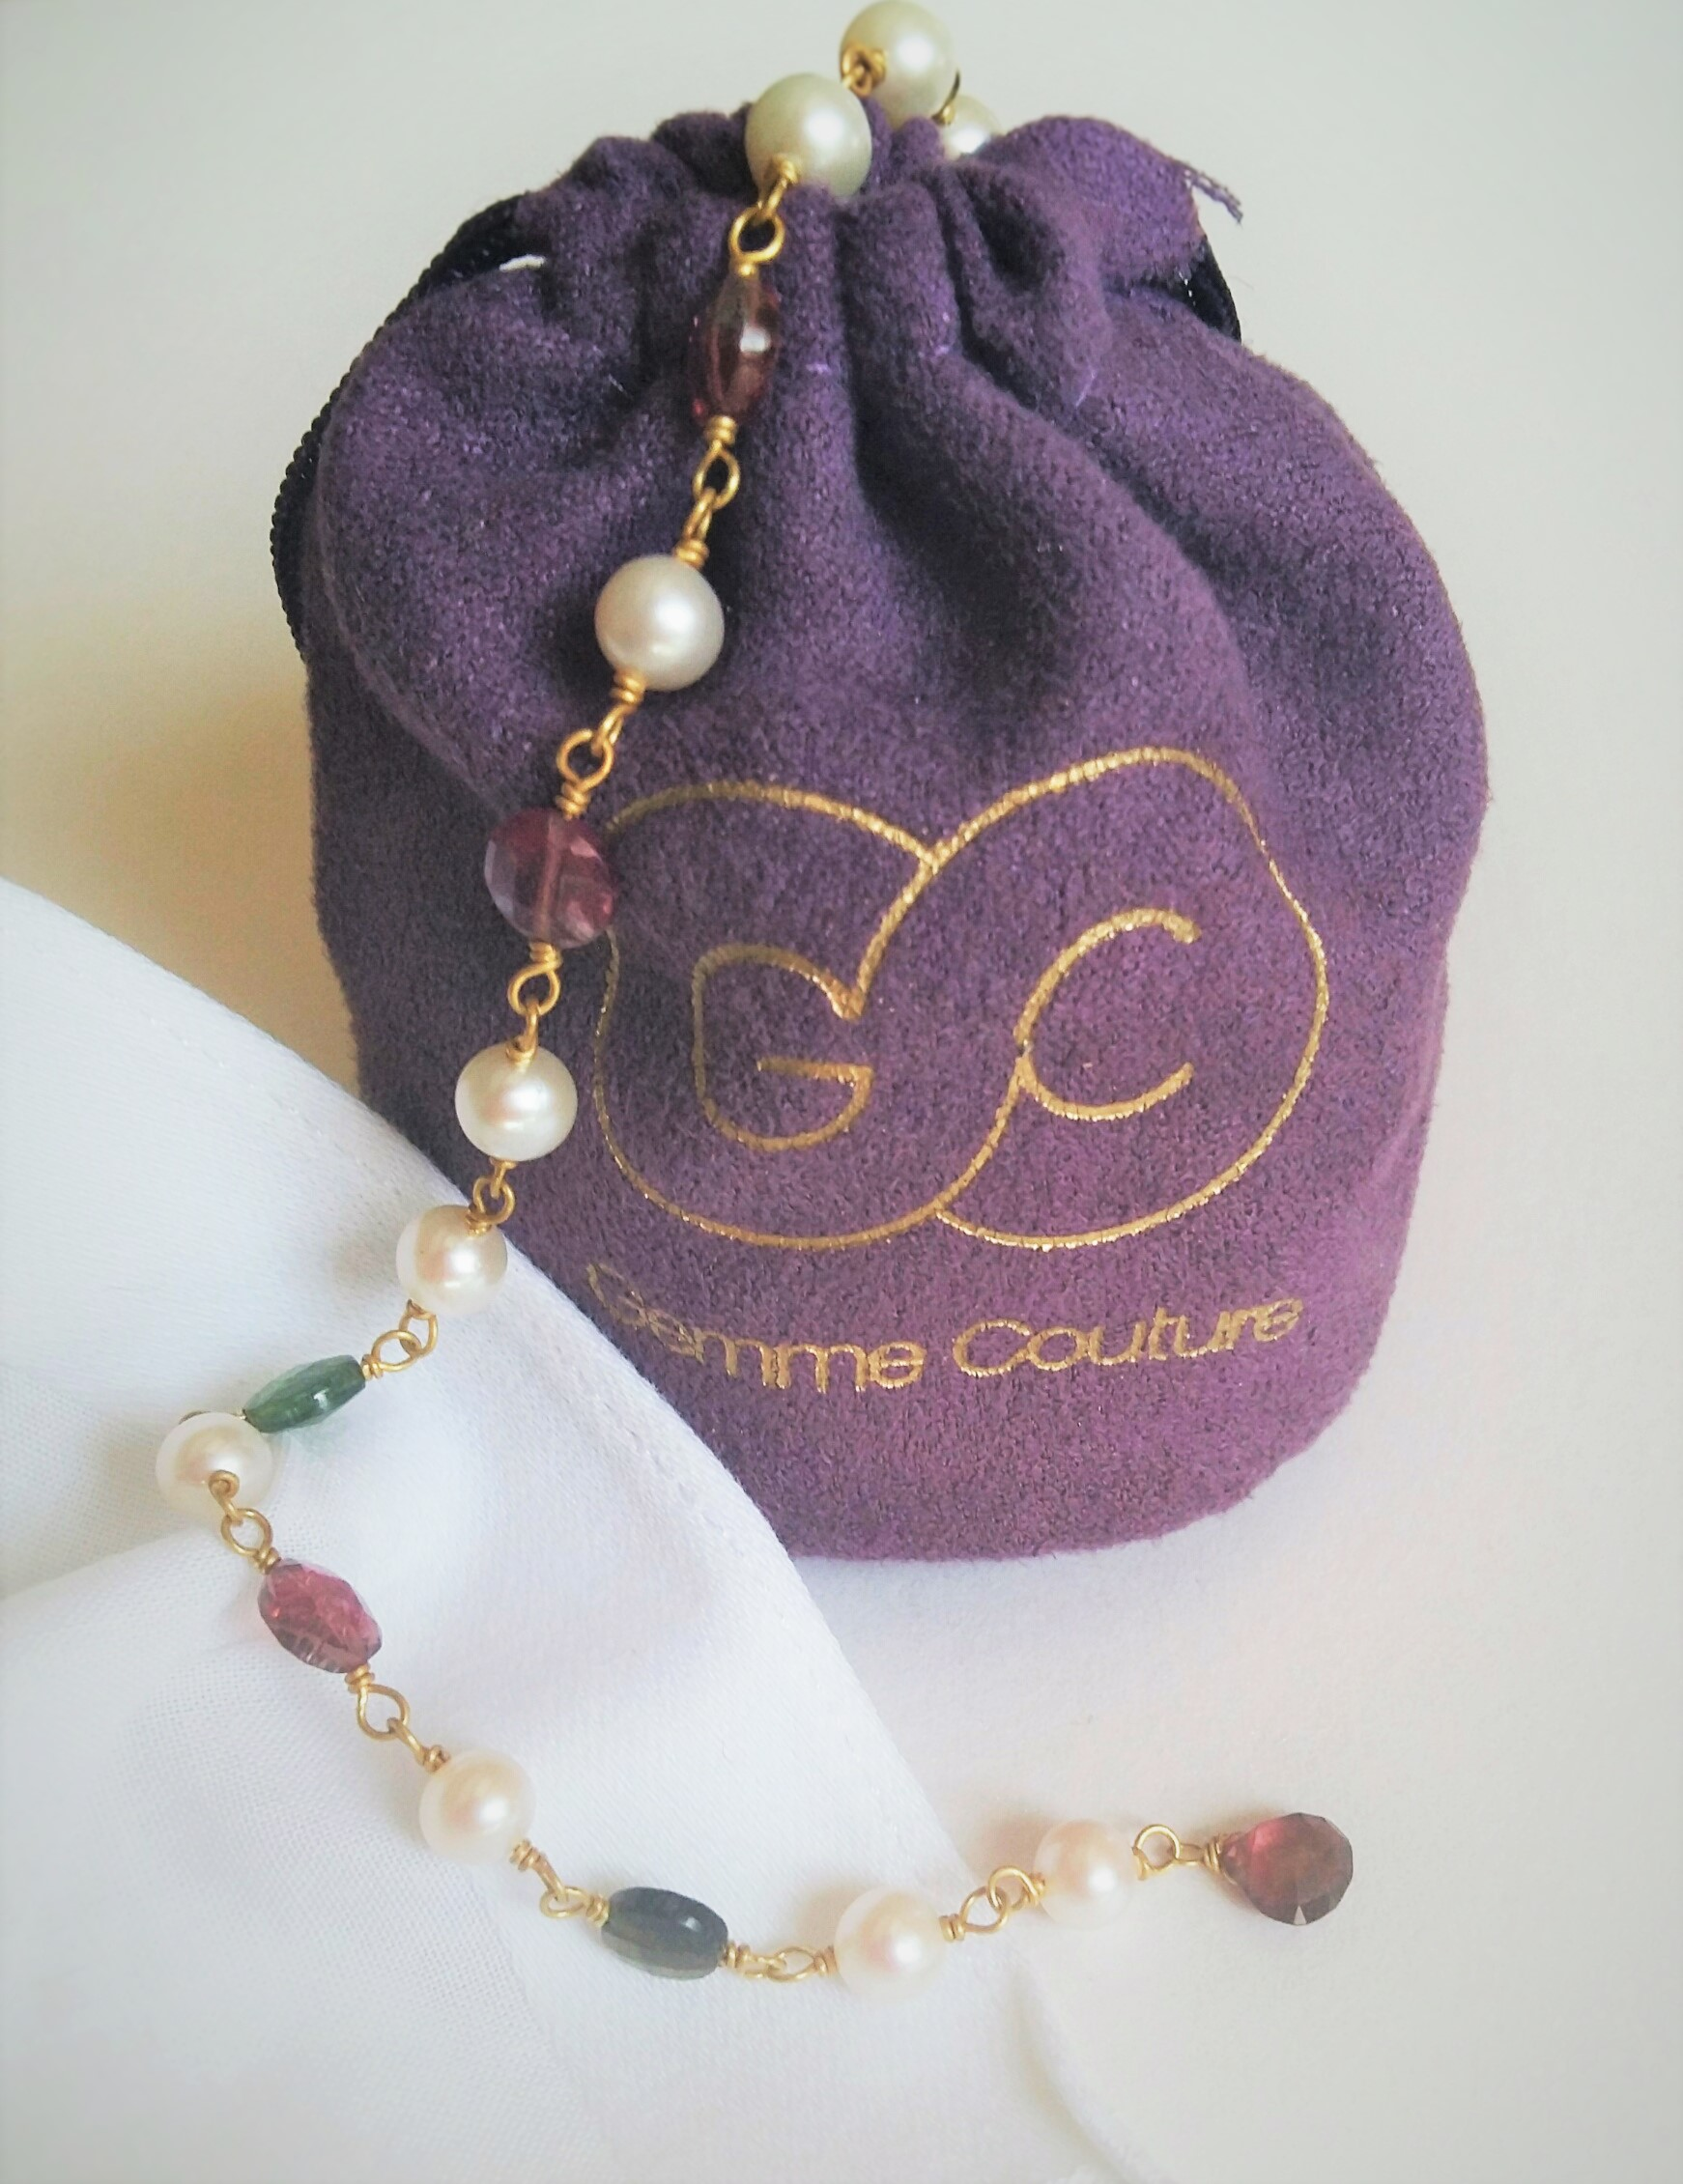 how to take care of your jewelry gemme couture gemme couture